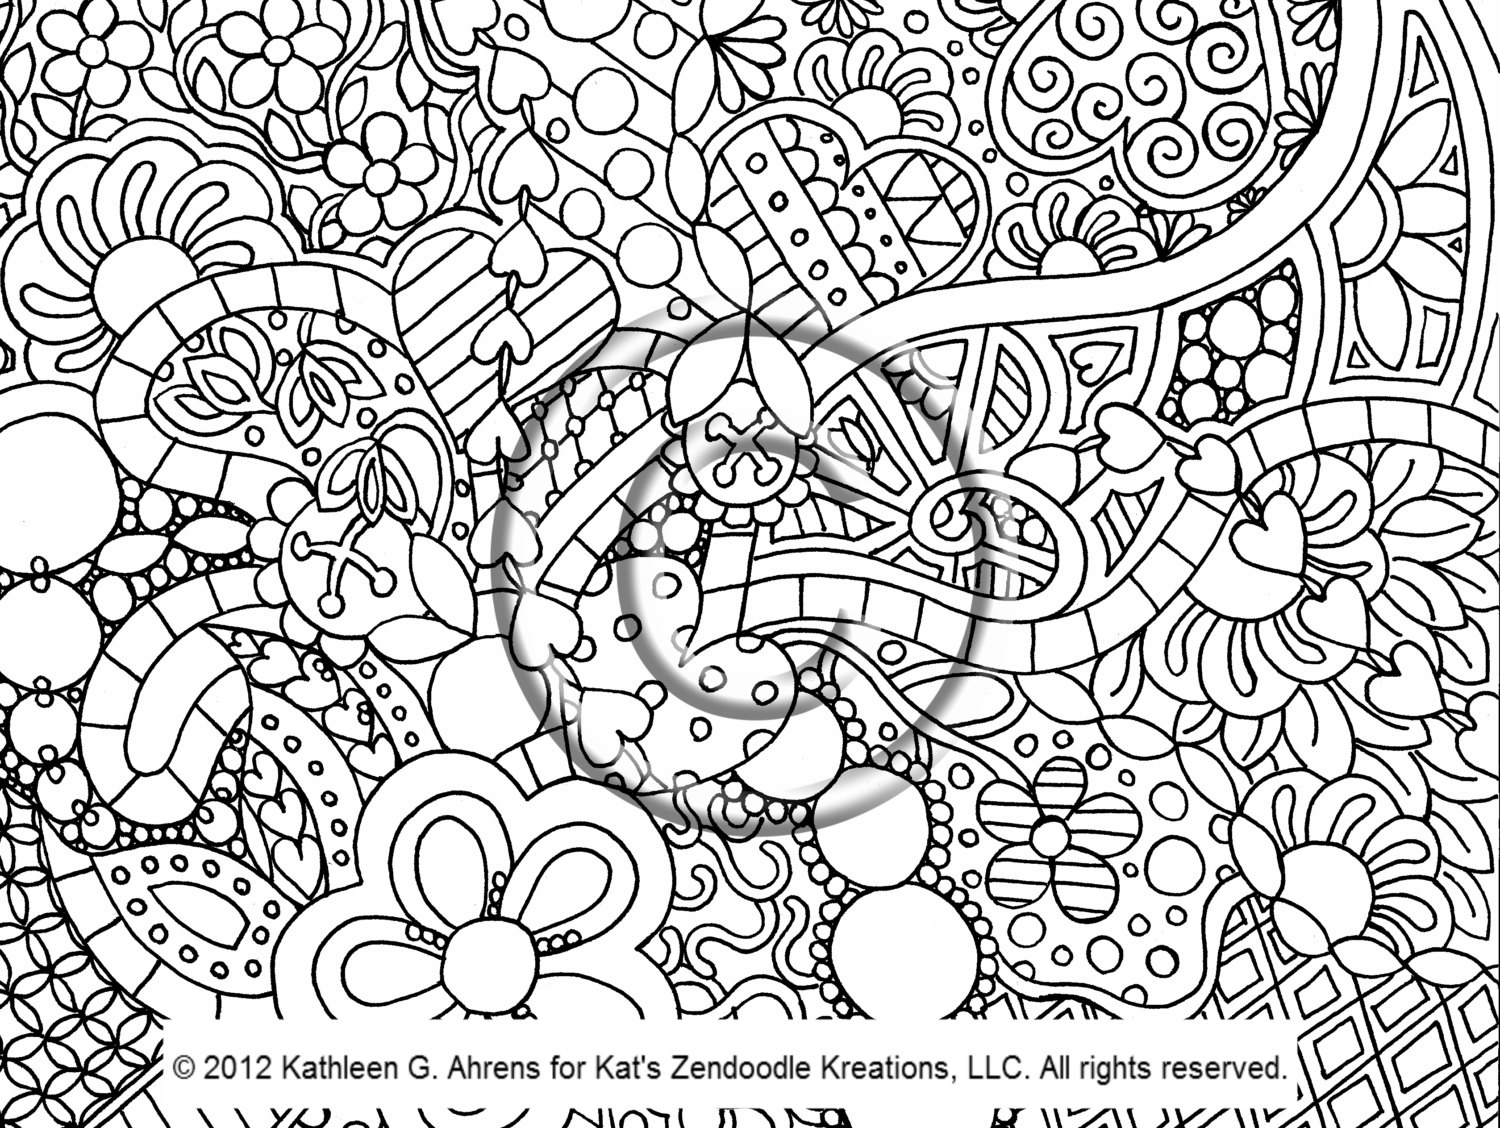 psychedelic coloring pages the best free artistic coloring page images download from pages coloring psychedelic